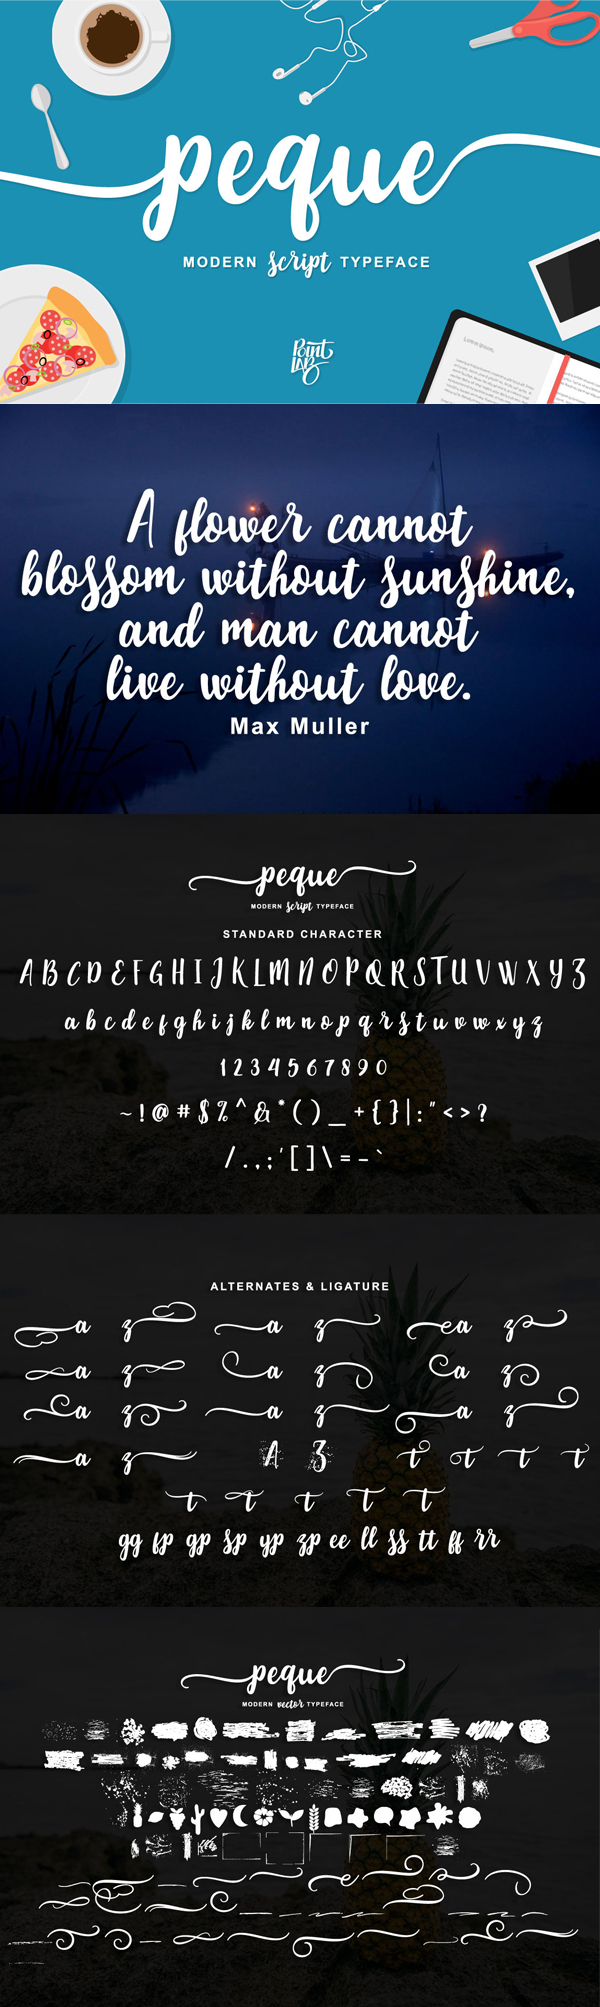 100 Greatest Free Fonts For 2019 - 10